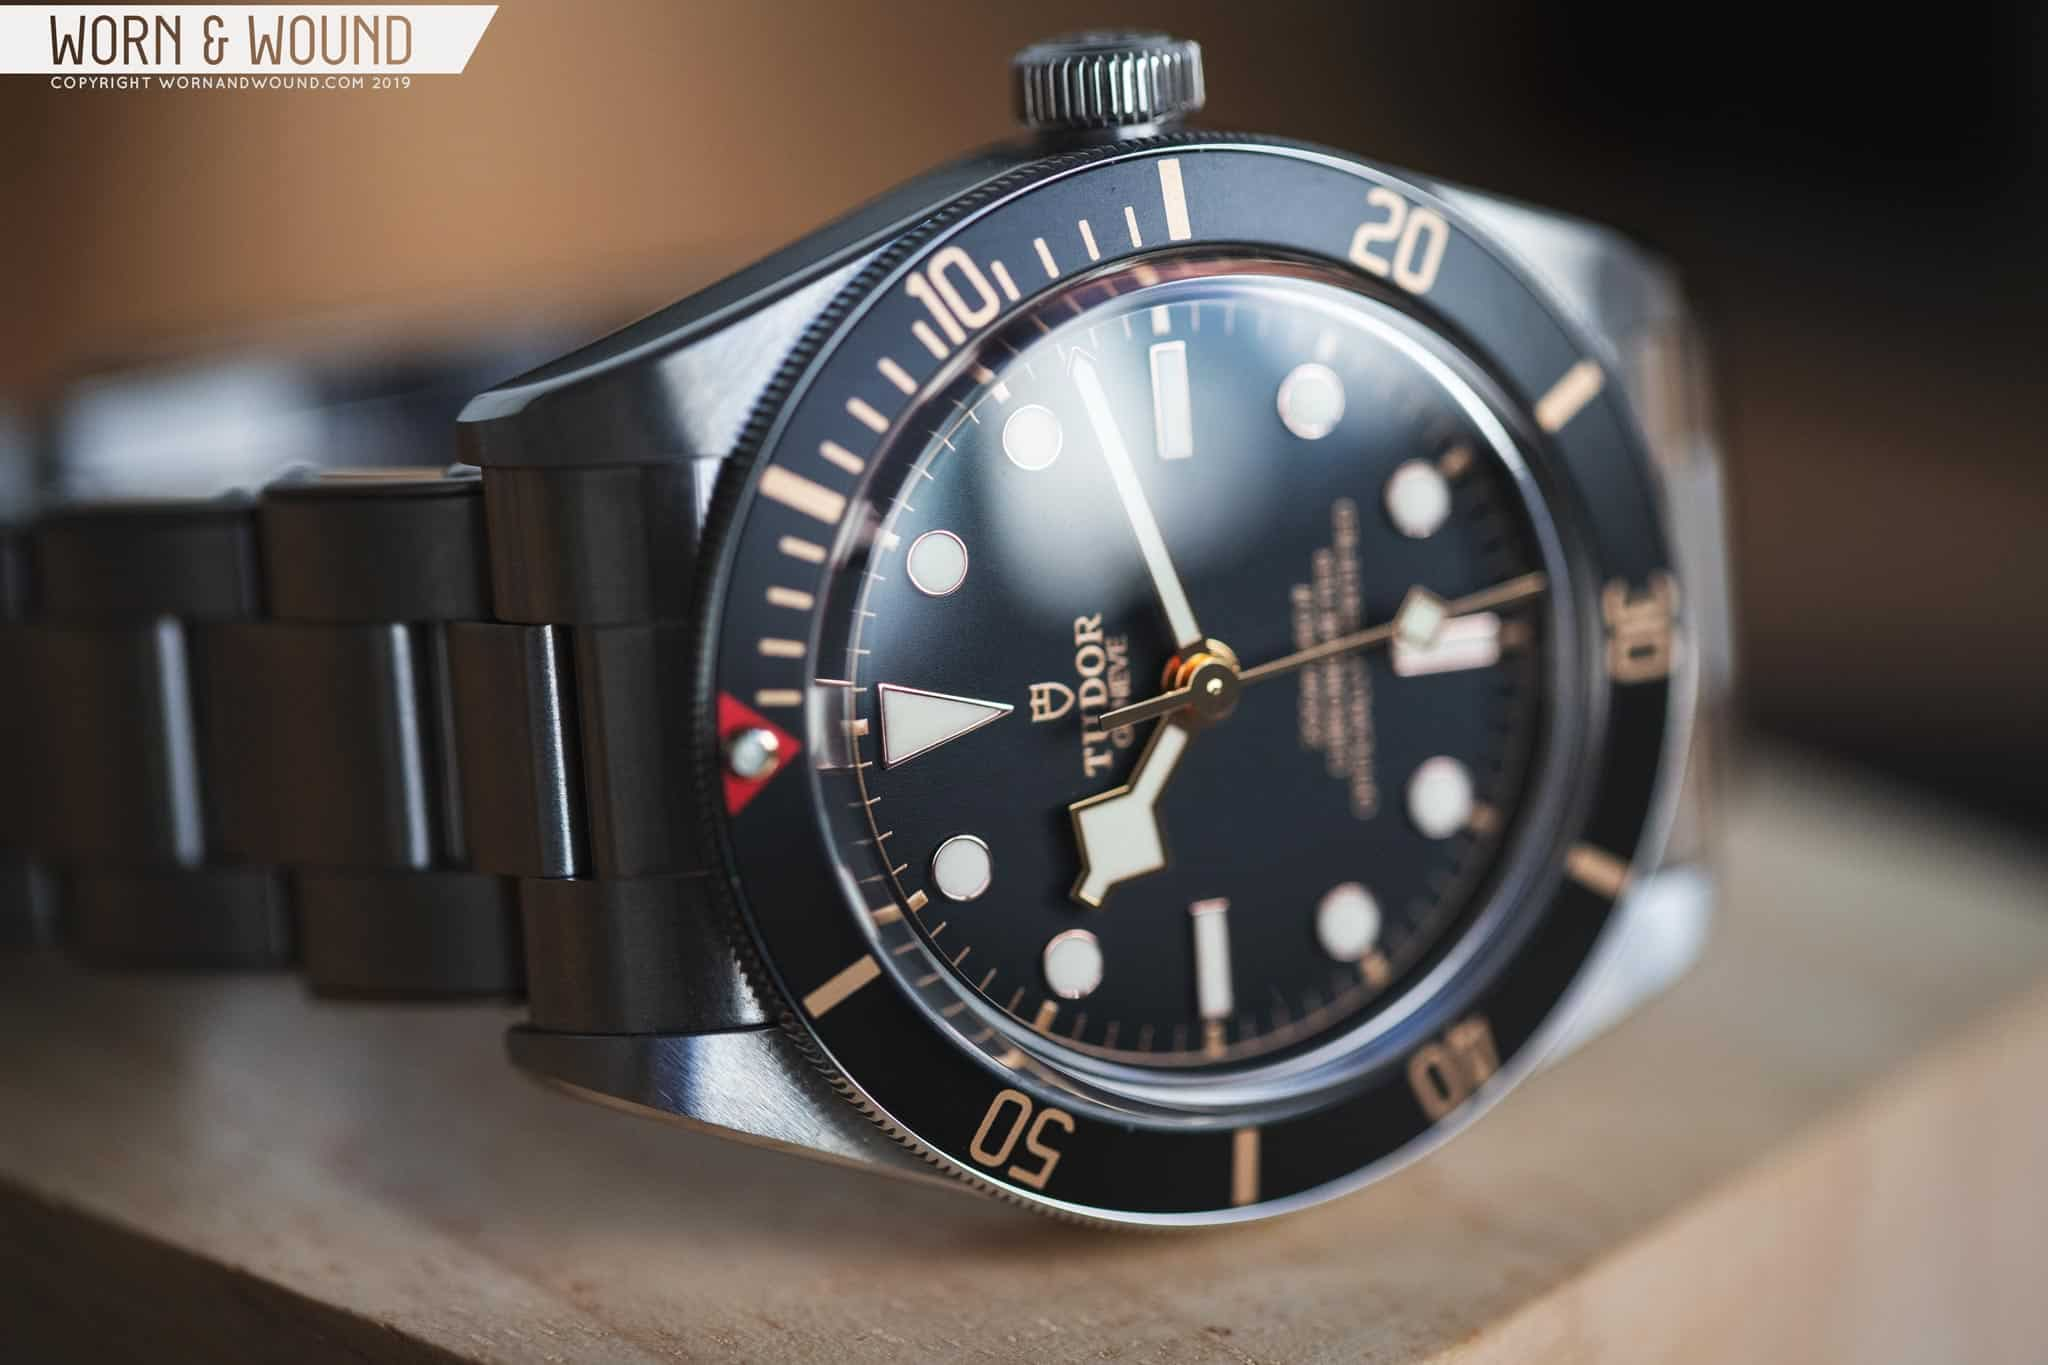 TUDOR BLACKBAY FIFTYEIGHT DIAL7 - Recapping 2019: Our 10 Favorite Watch Reviews of the Year